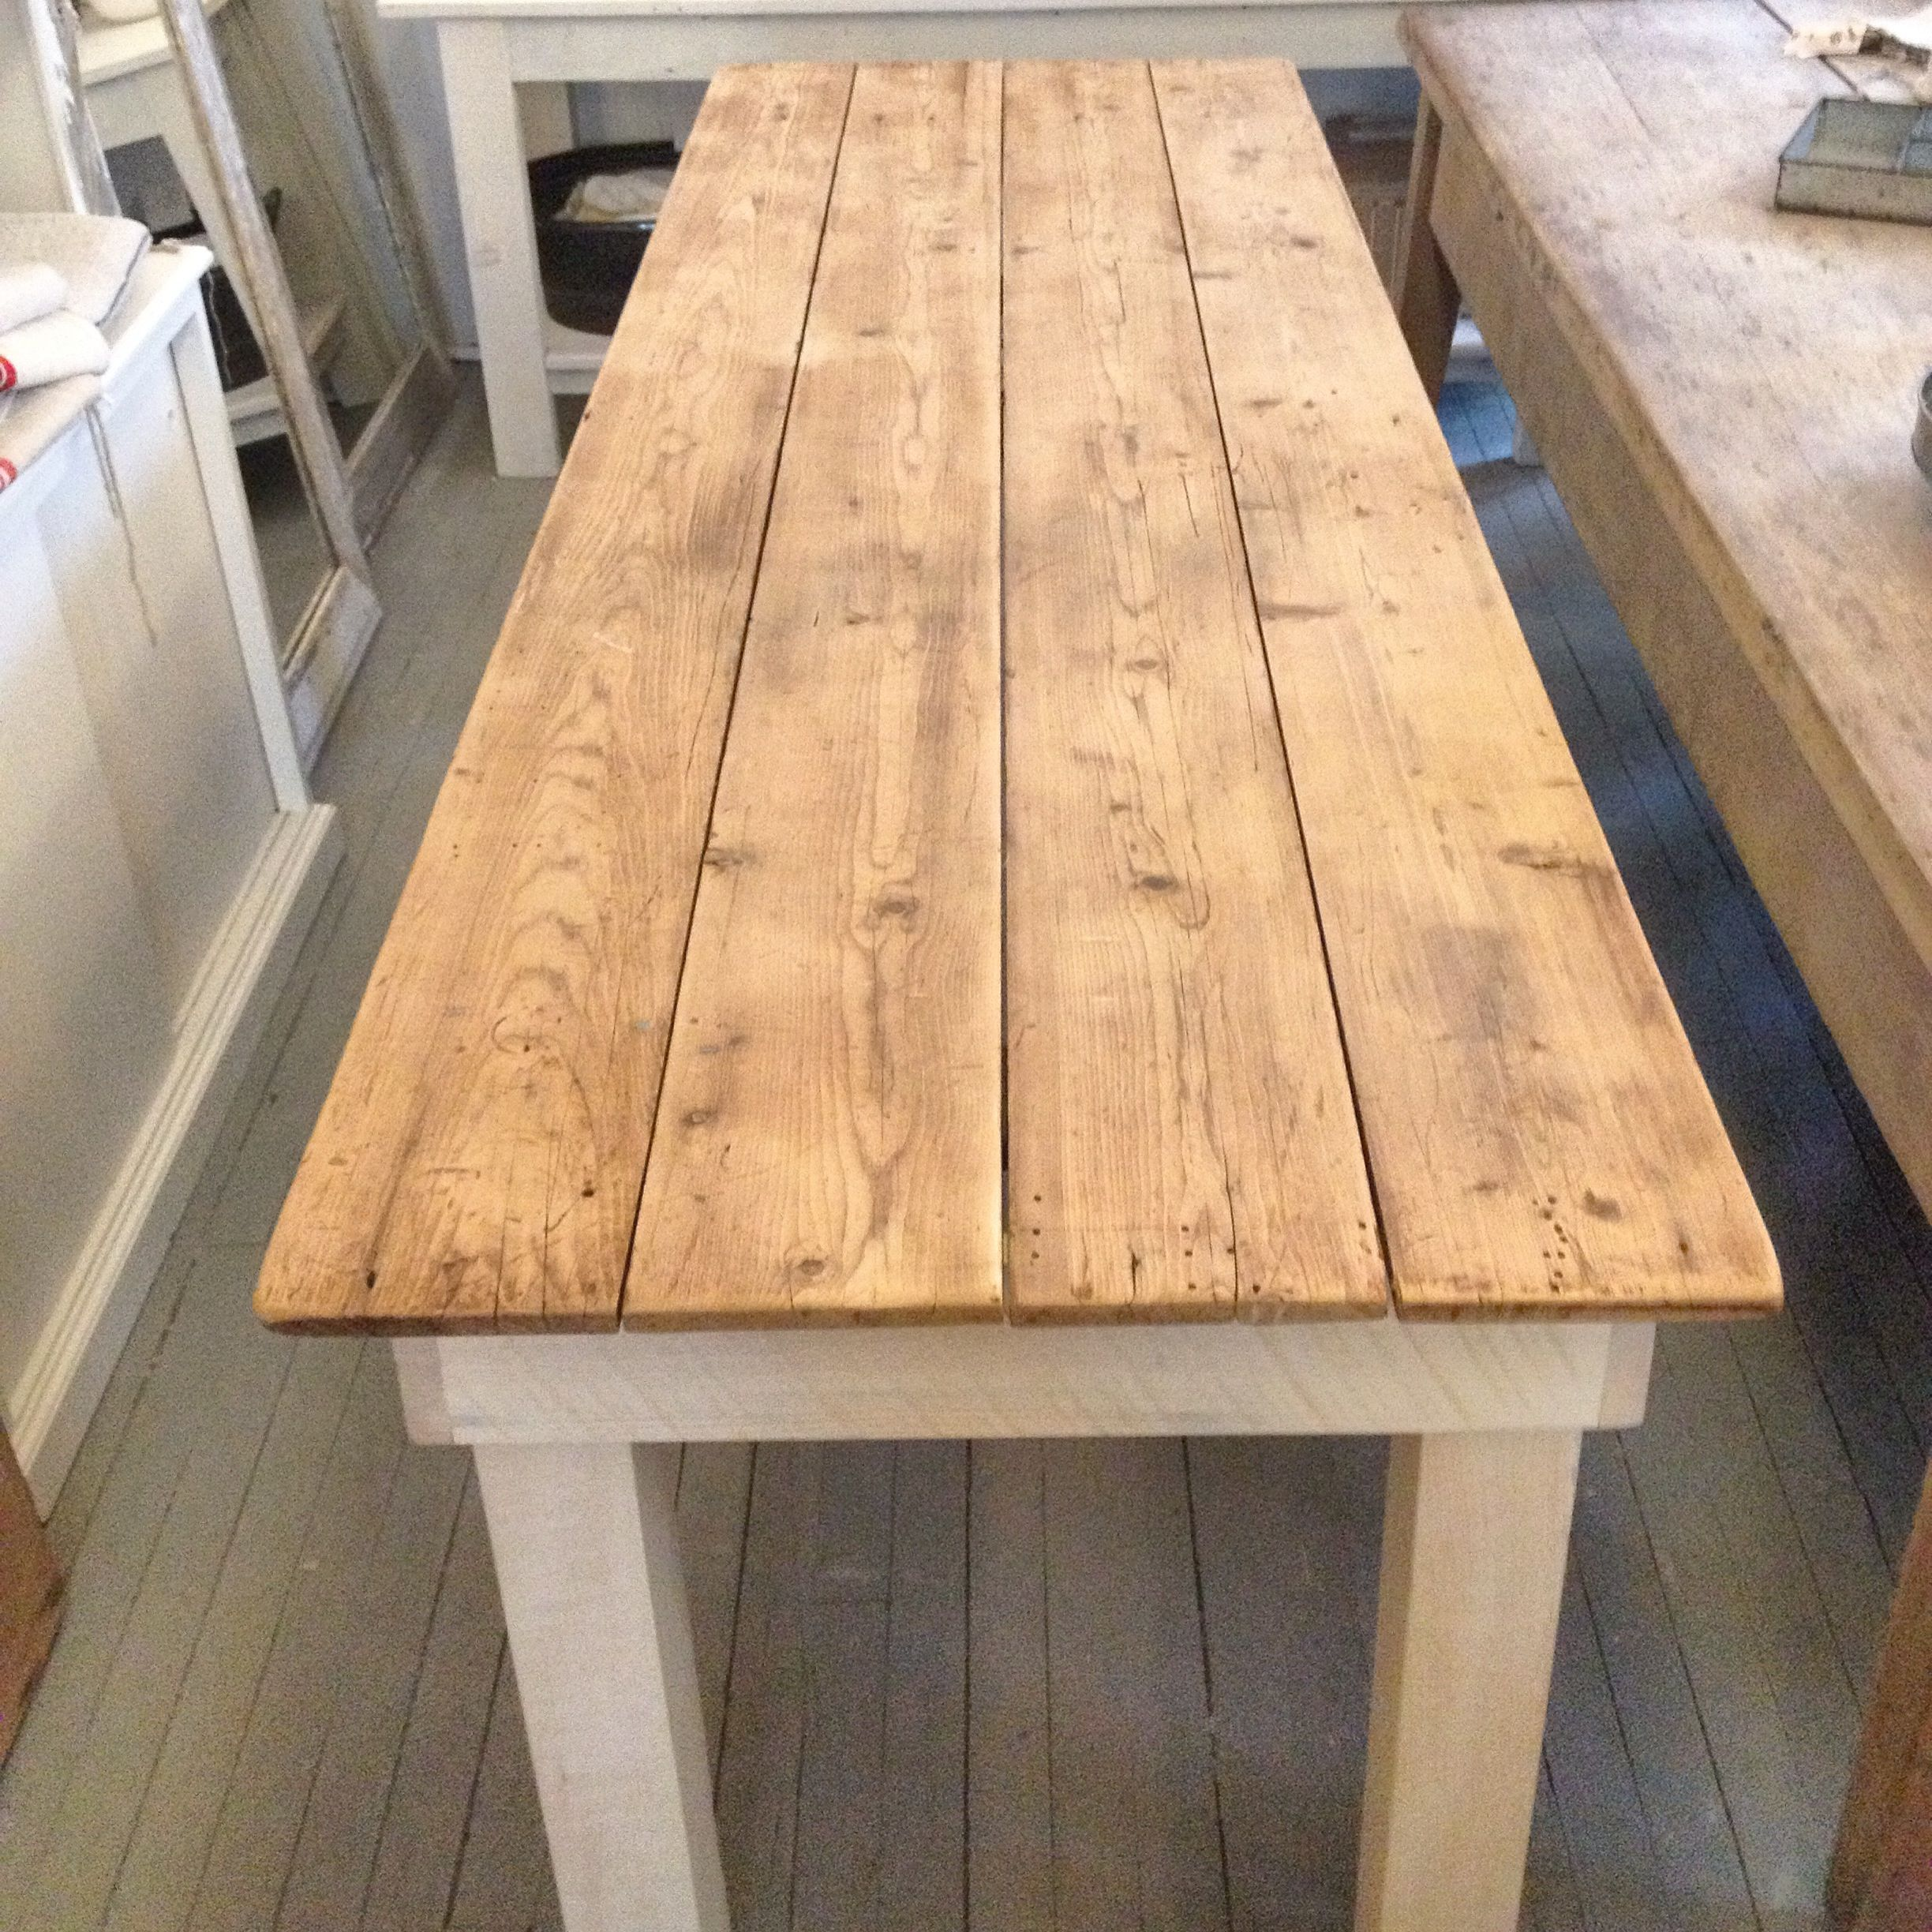 Reclaimed Wood Farmhouse Table The White Flower